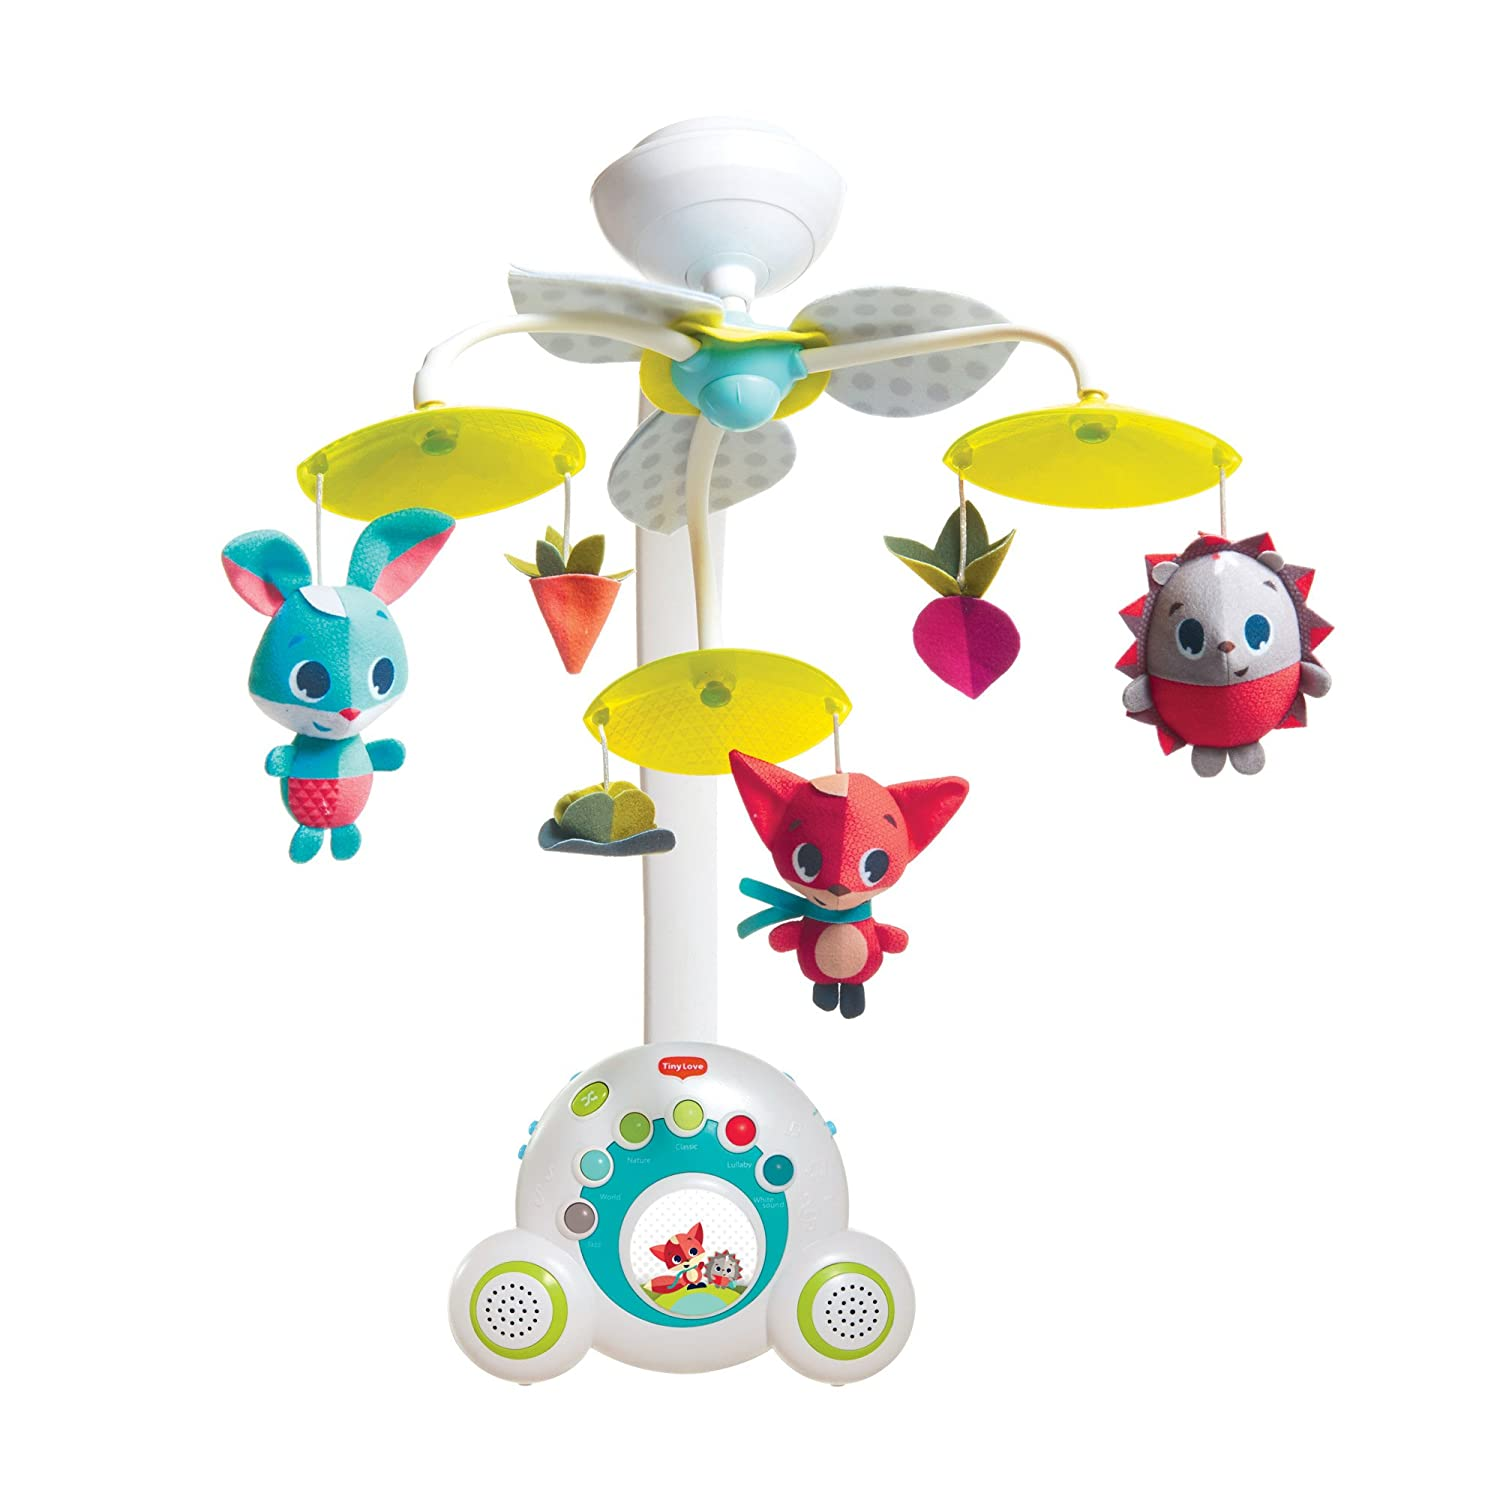 7. Tiny Love Meadow Days Soothe 'n Groove Baby Mobile